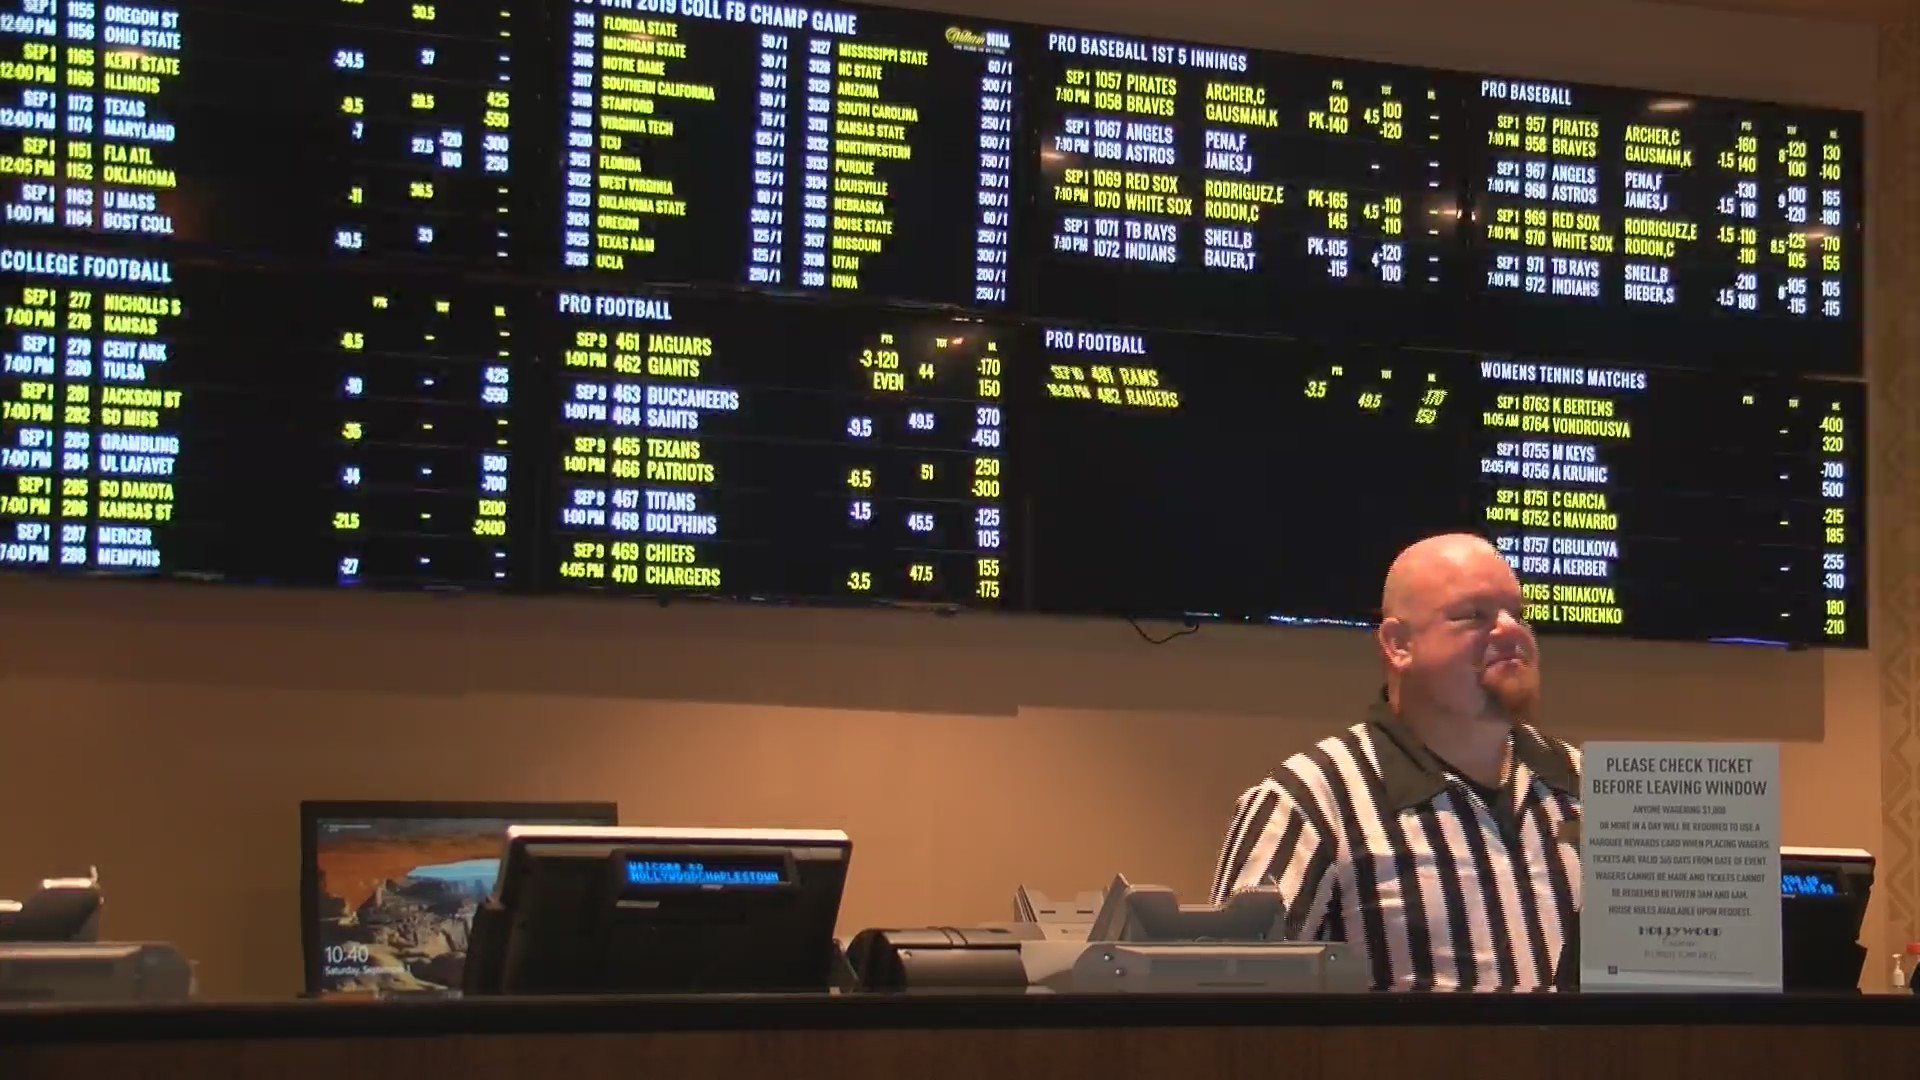 SPORTS BETTING BEGINS